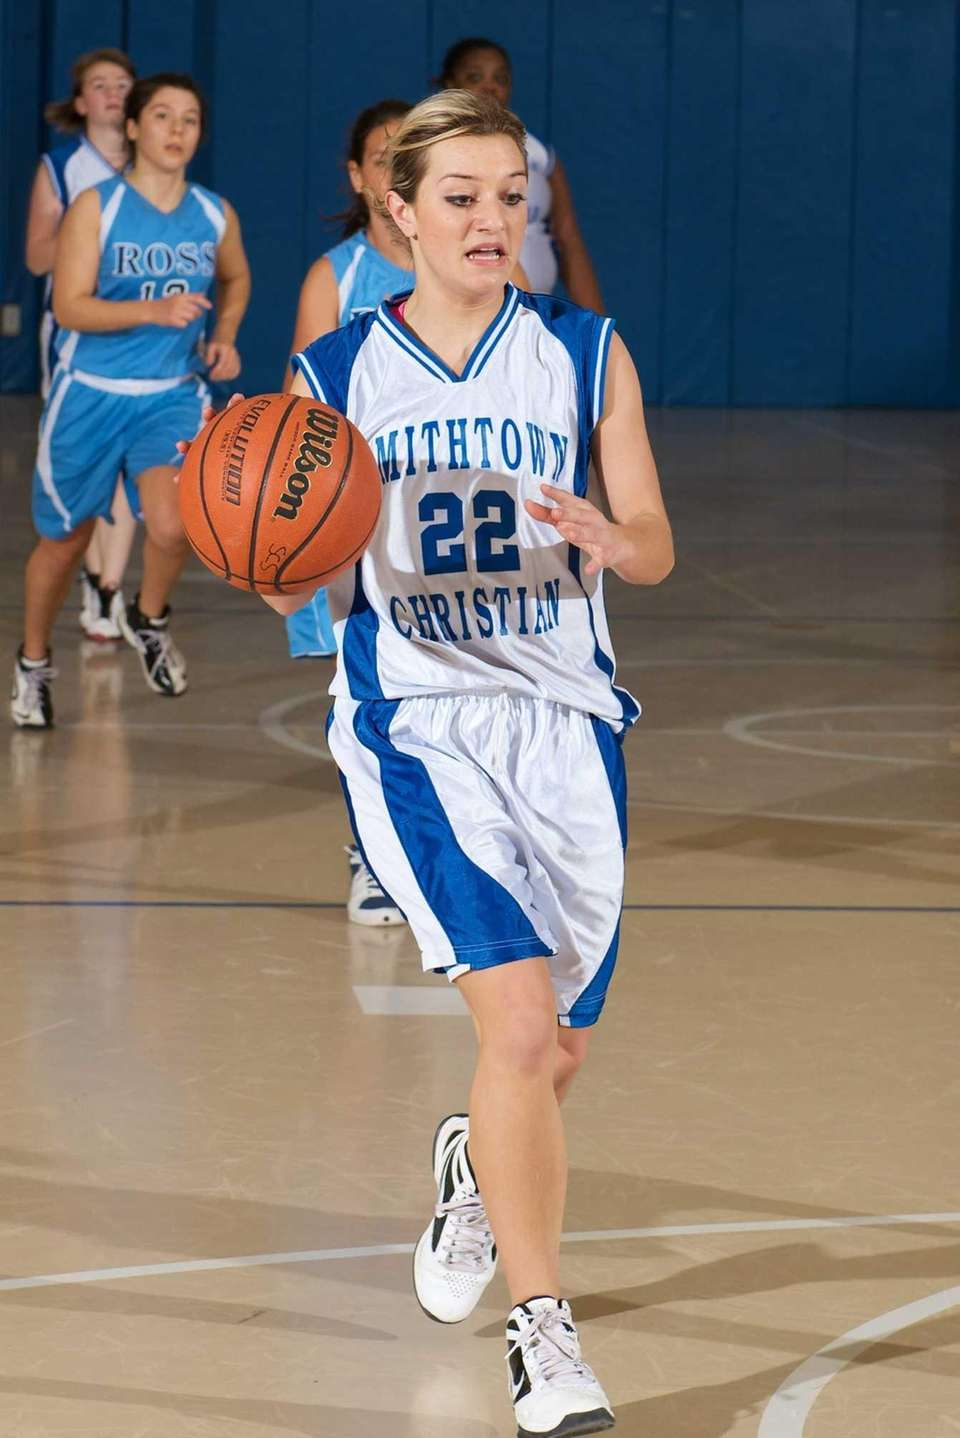 Smithtown Christian guard Victoria Linsalato (22) drives to